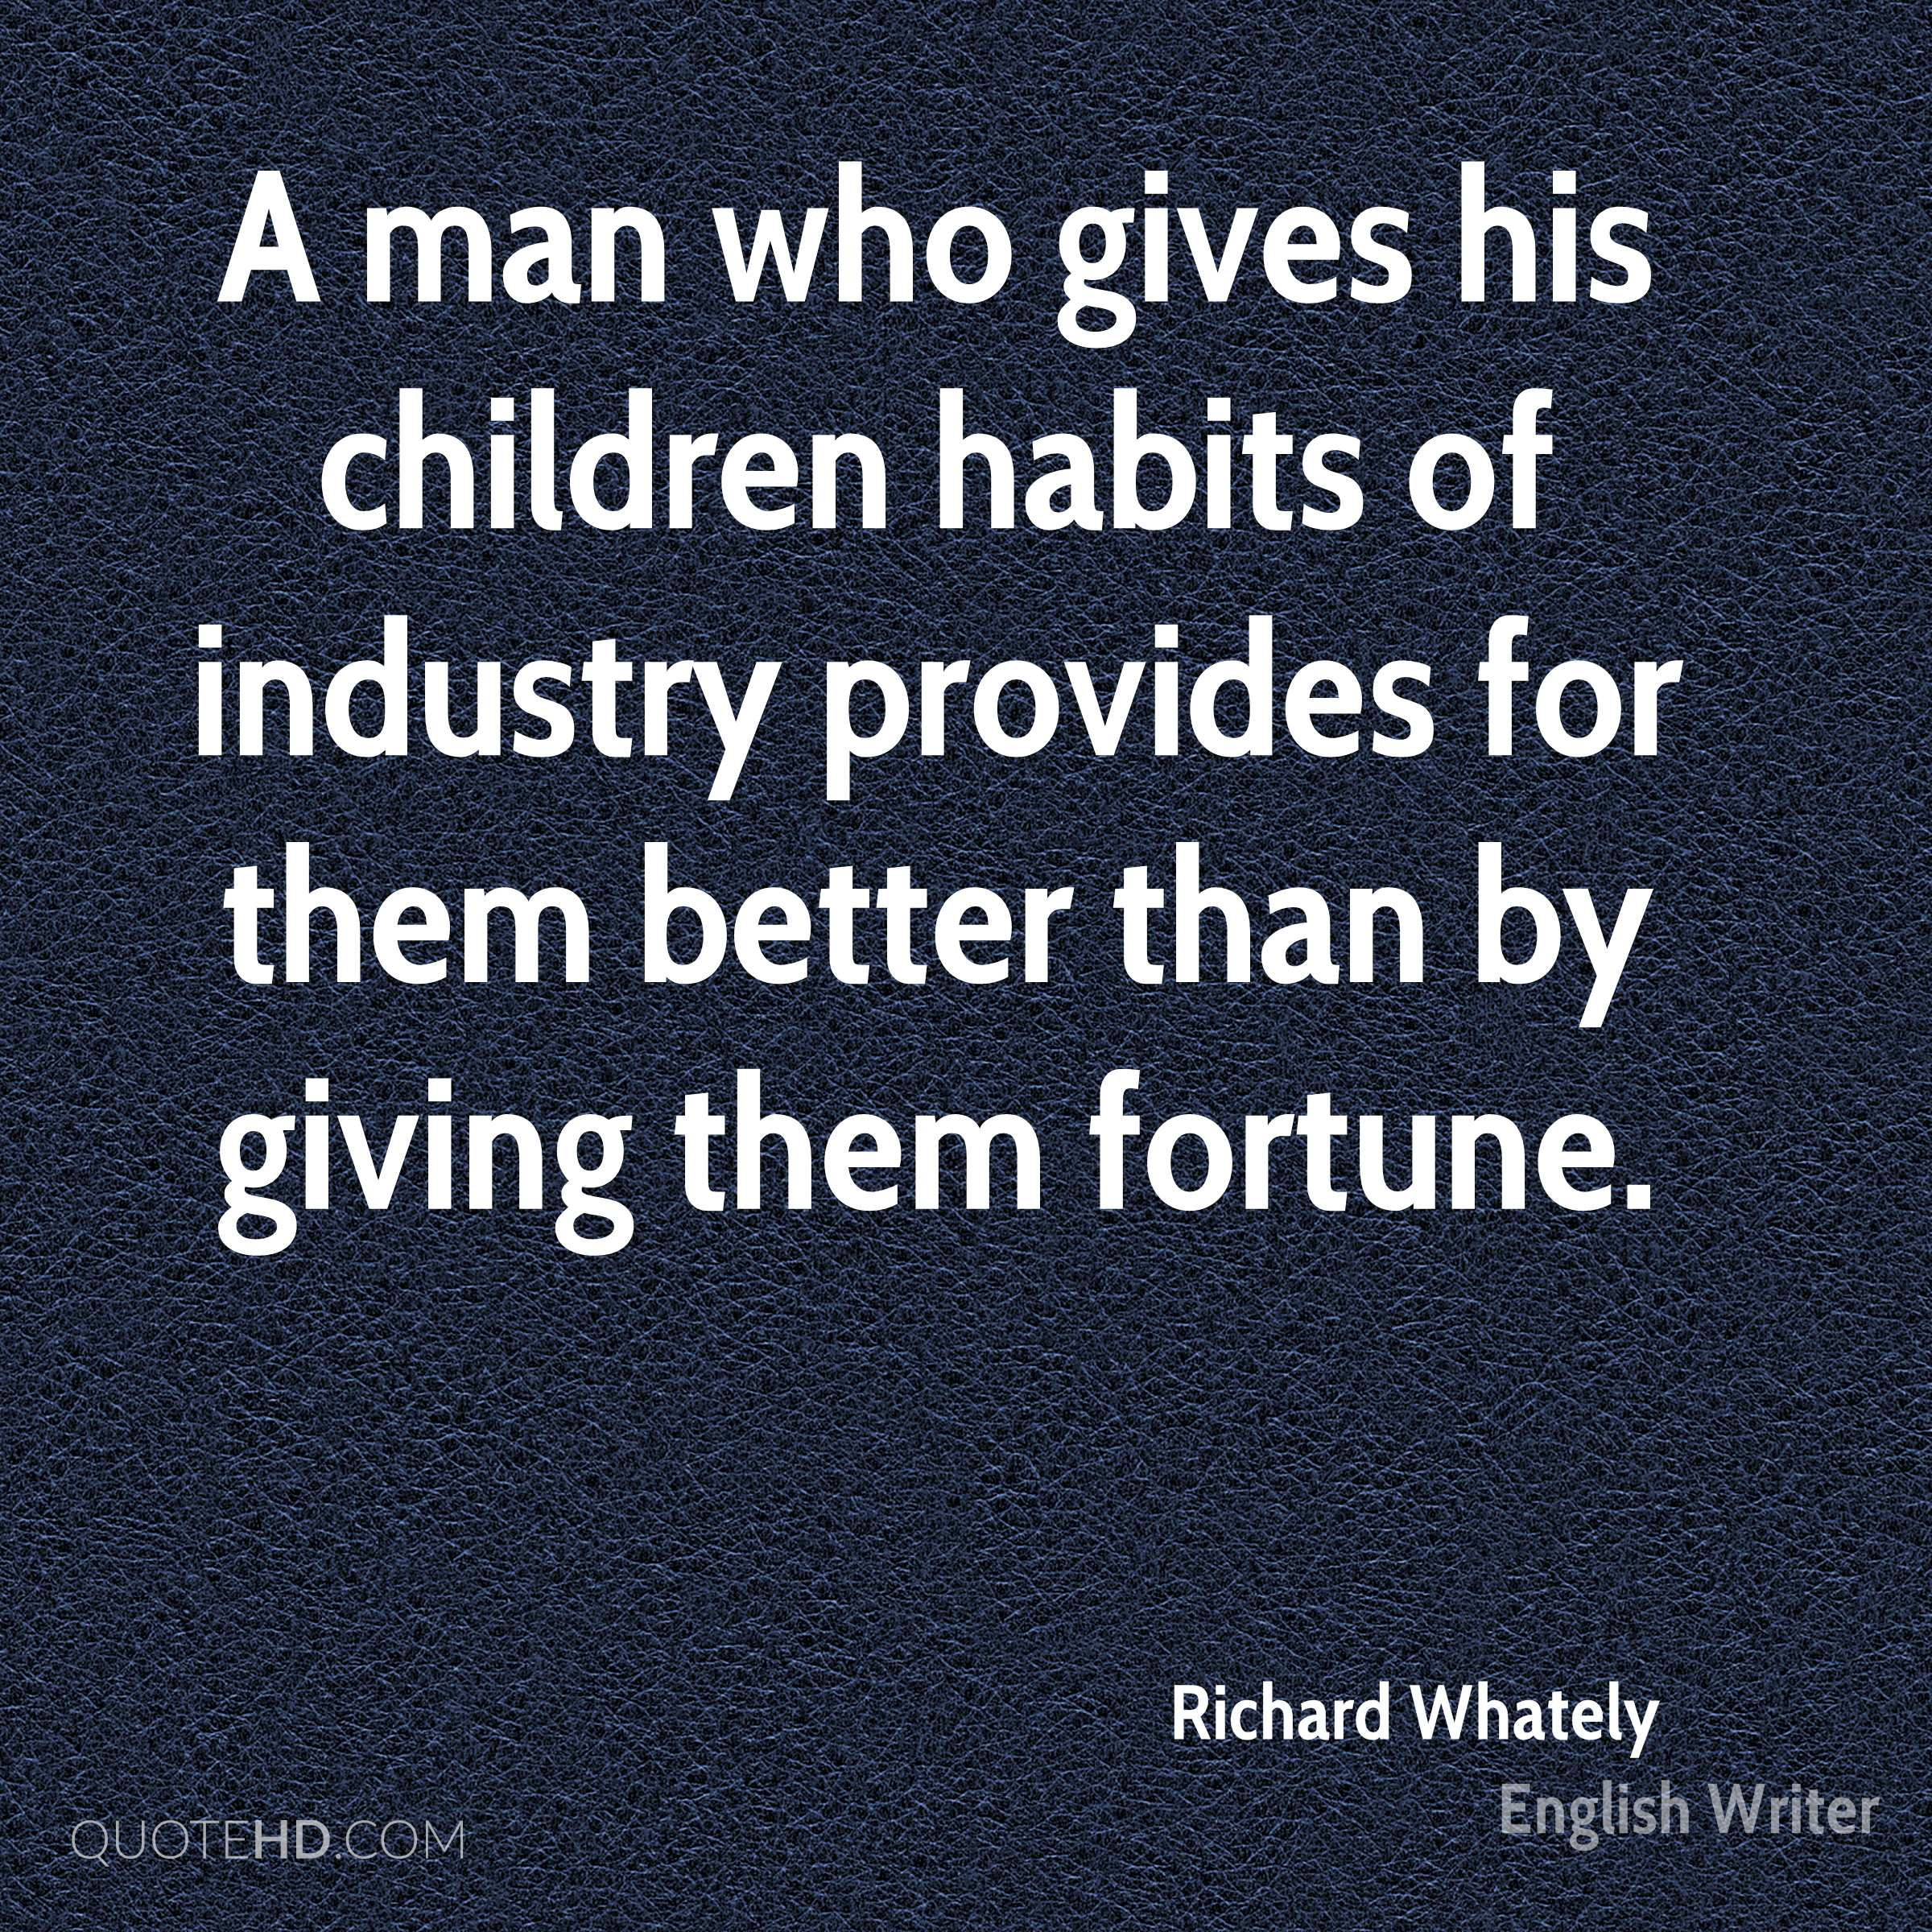 A man who gives his children habits of industry provides for them better than by giving them fortune.